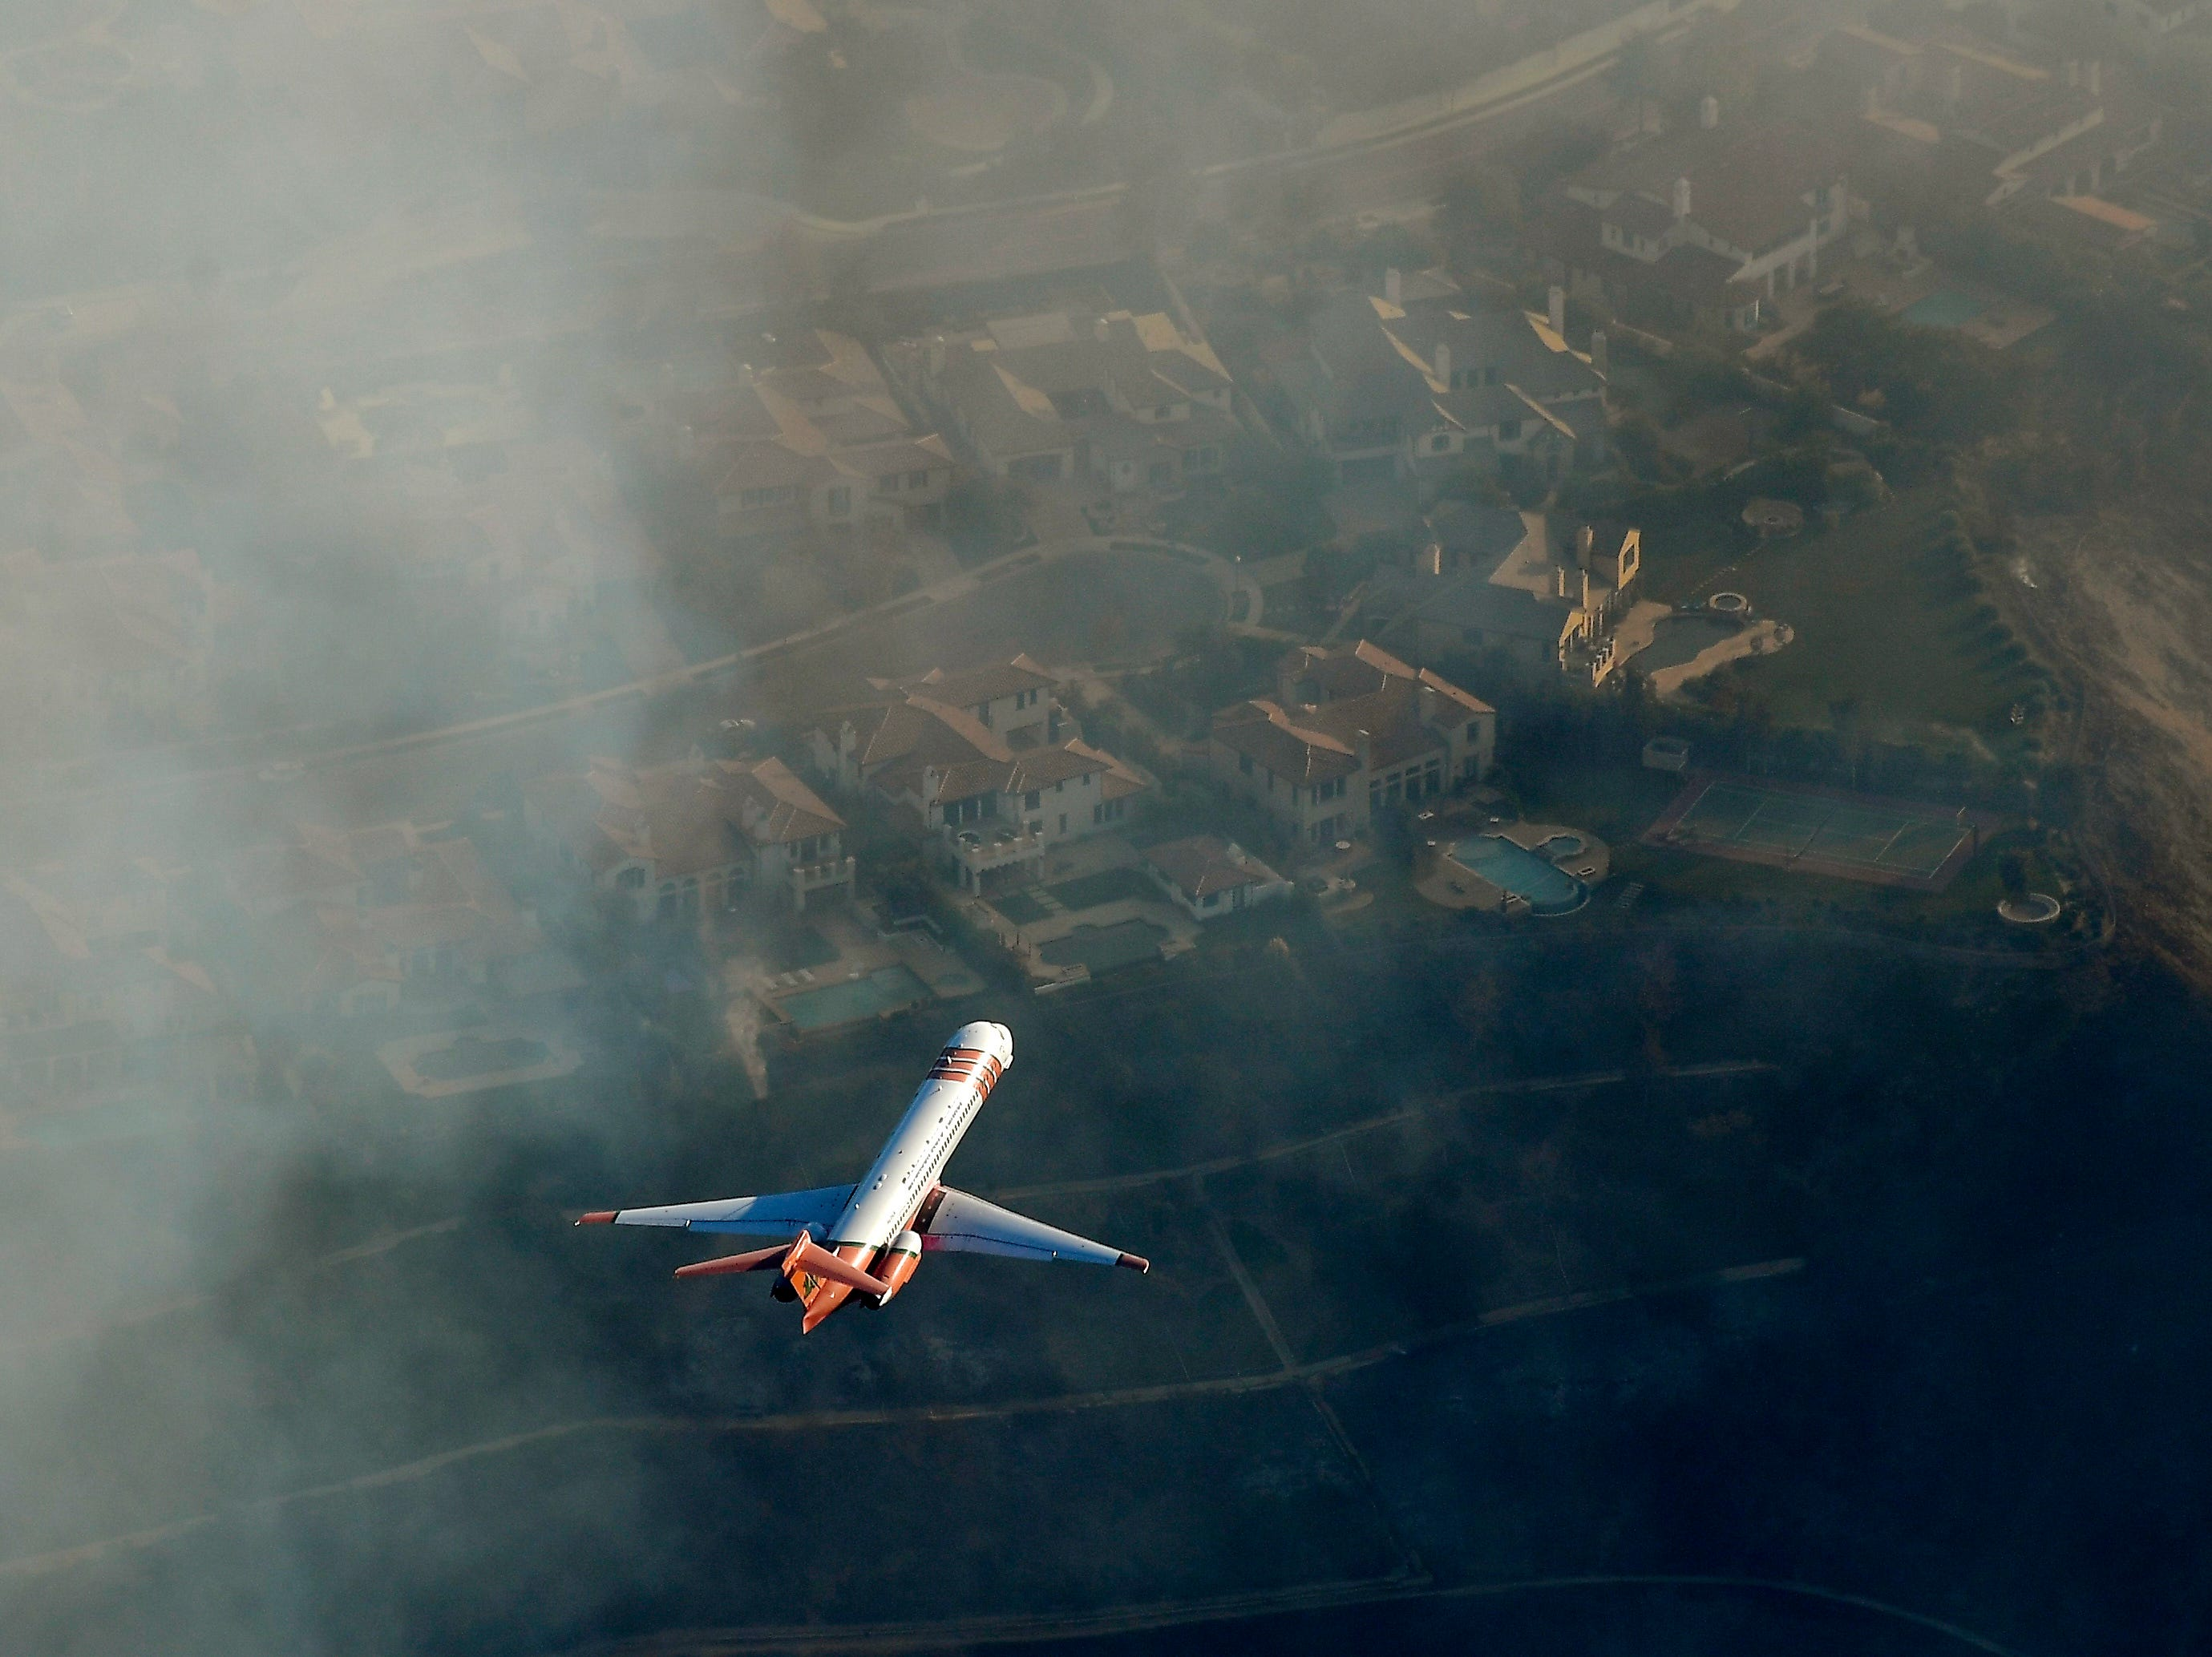 A DC-10 air tanker flies over homes as fires burn Friday as seen from a helicopter over Calabasas.